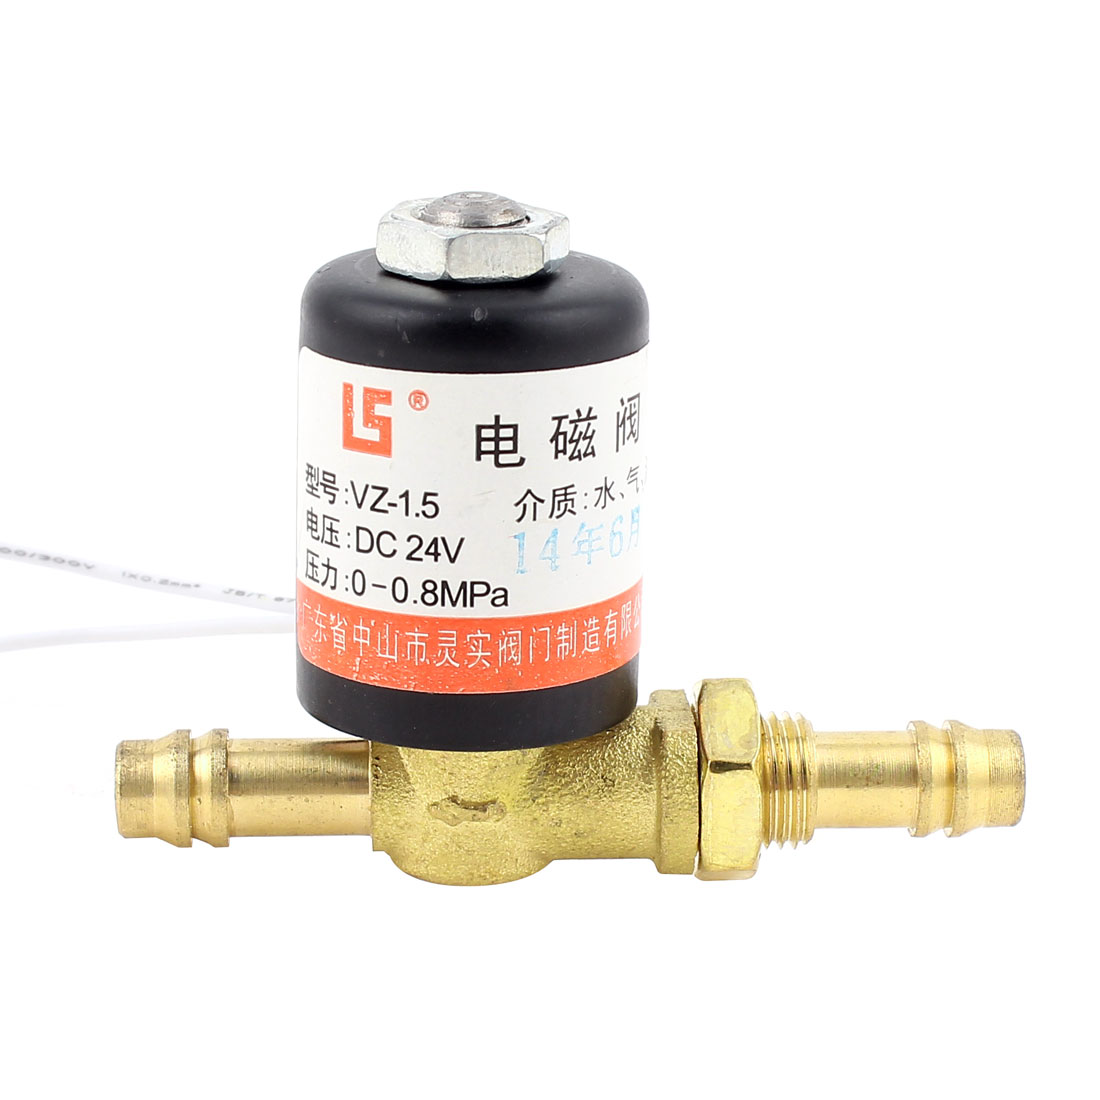 DC 24V 0-0.8Mpa Pressure 2Position Dual Way Solenoid Valve for 8.5mm Inner Dia Hose